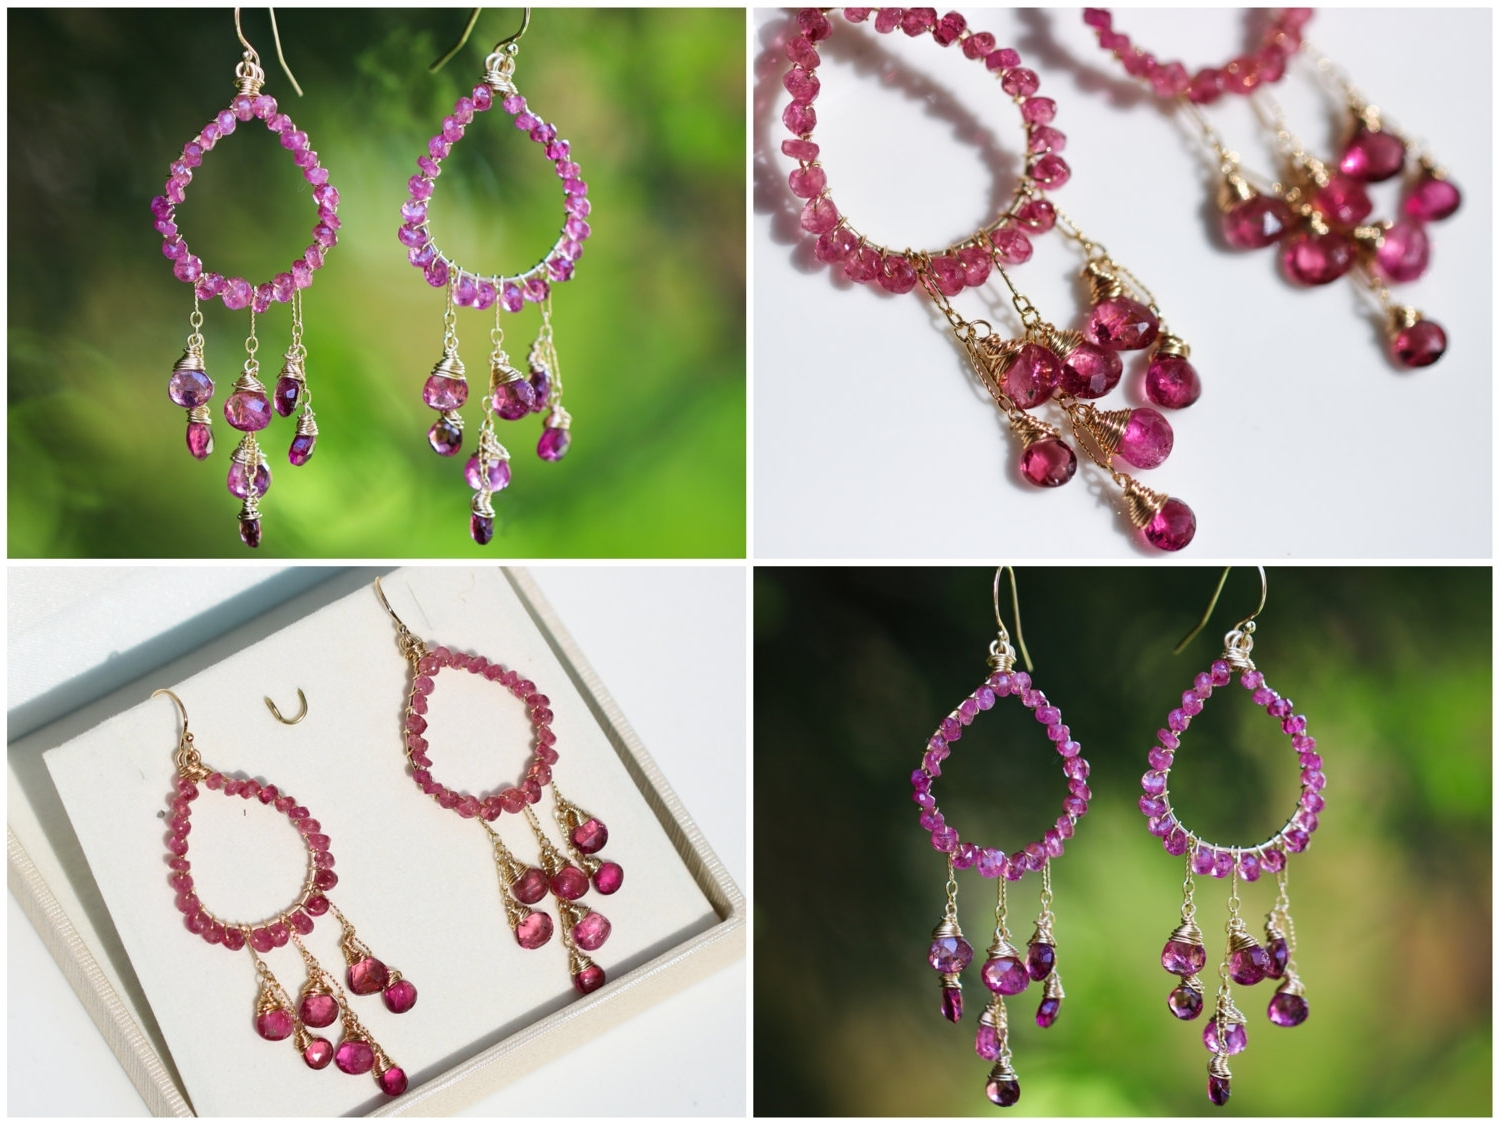 Fuschia Chandelier Pertaining To Best And Newest Chandelier : Rubellite Pink Tourmaline Chandelier Earrings In Gold (View 18 of 20)